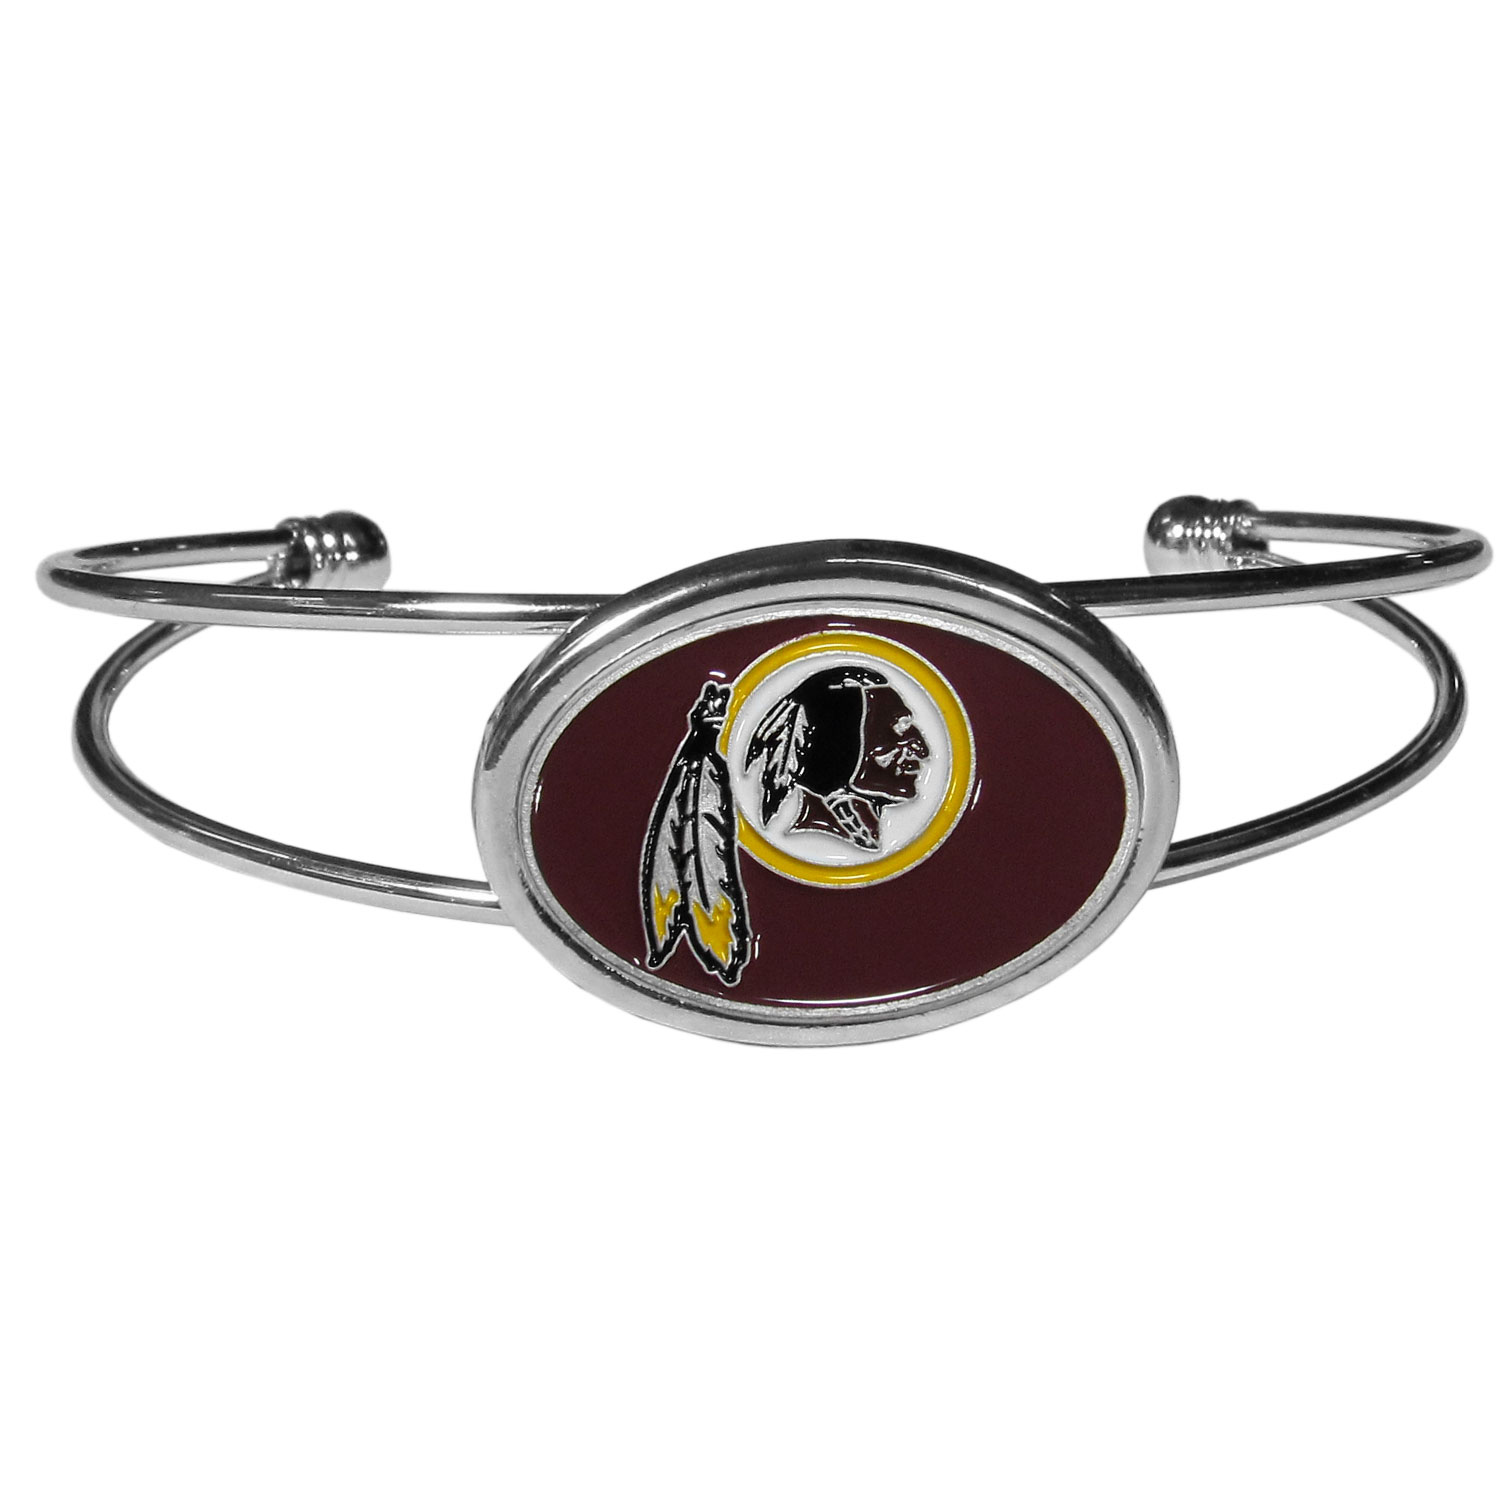 Washington Redskins Cuff Bracelet - These comfortable and fashionable double-bar cuff bracelets feature a 1 inch metal Washington Redskins inset logo with enameled detail.